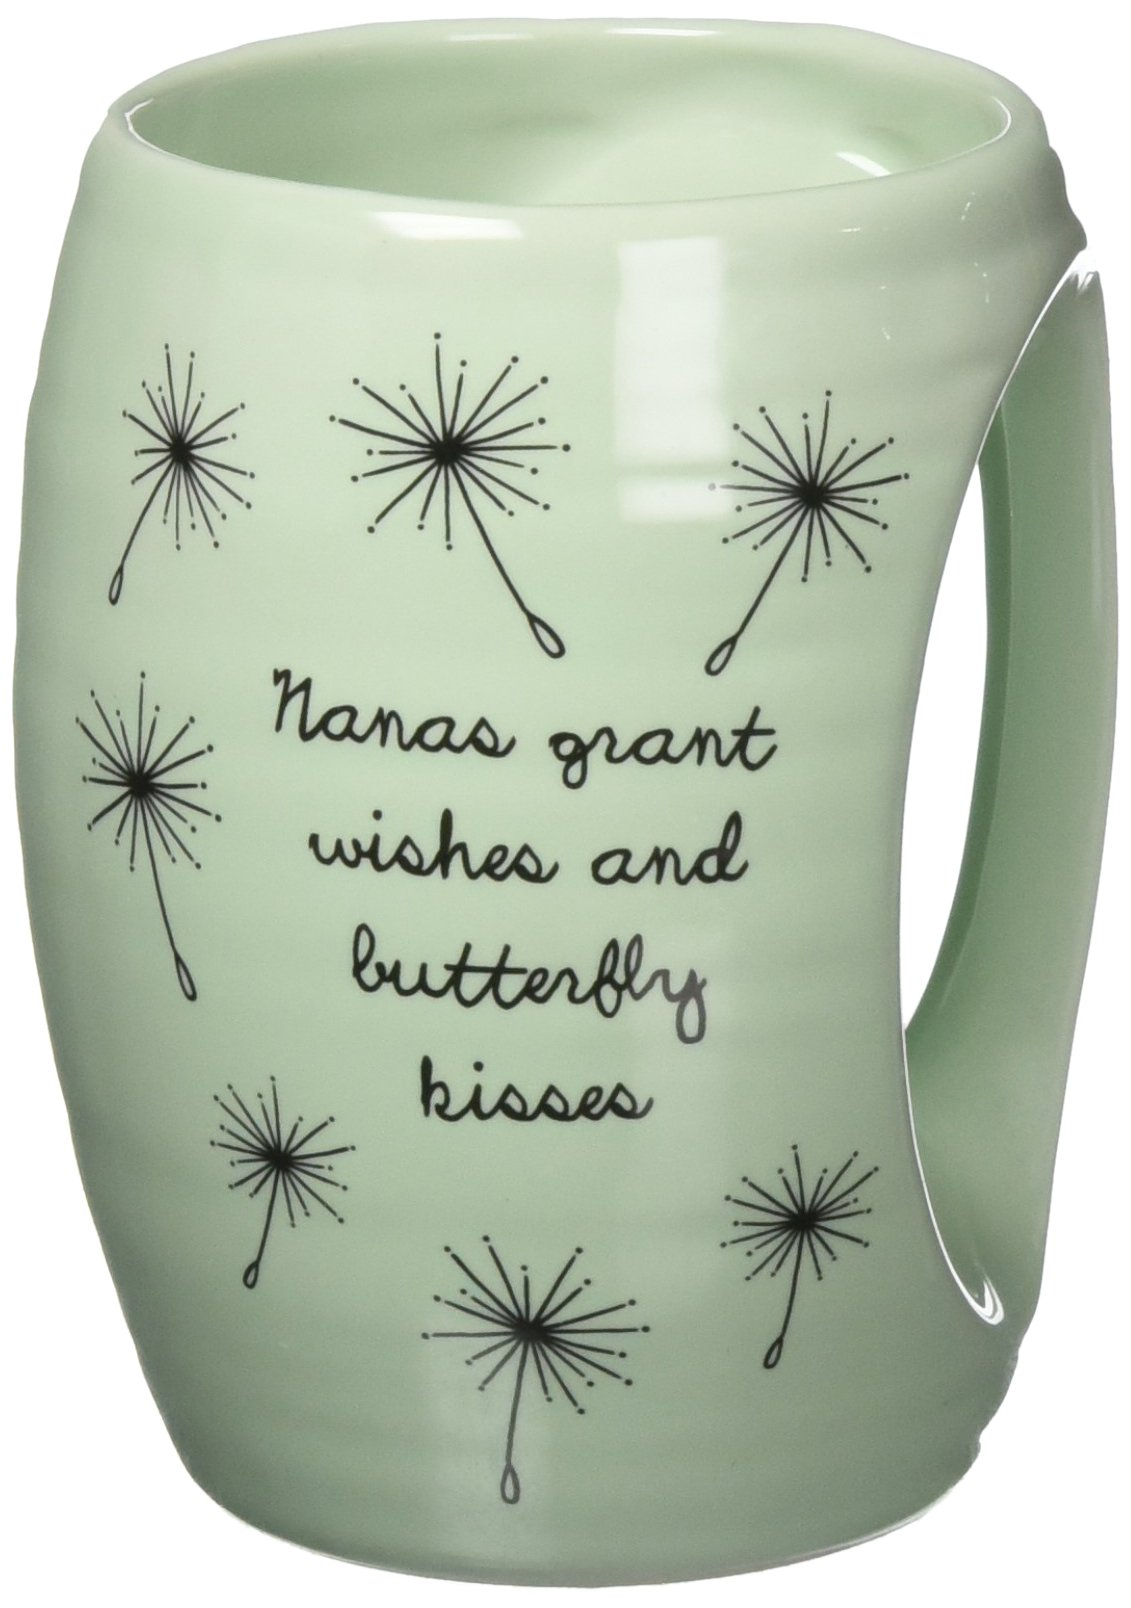 H2Z tableware Nanas Grant Wishes and Butterfly Kisses Ceramic Hand Warmer Mug, Green